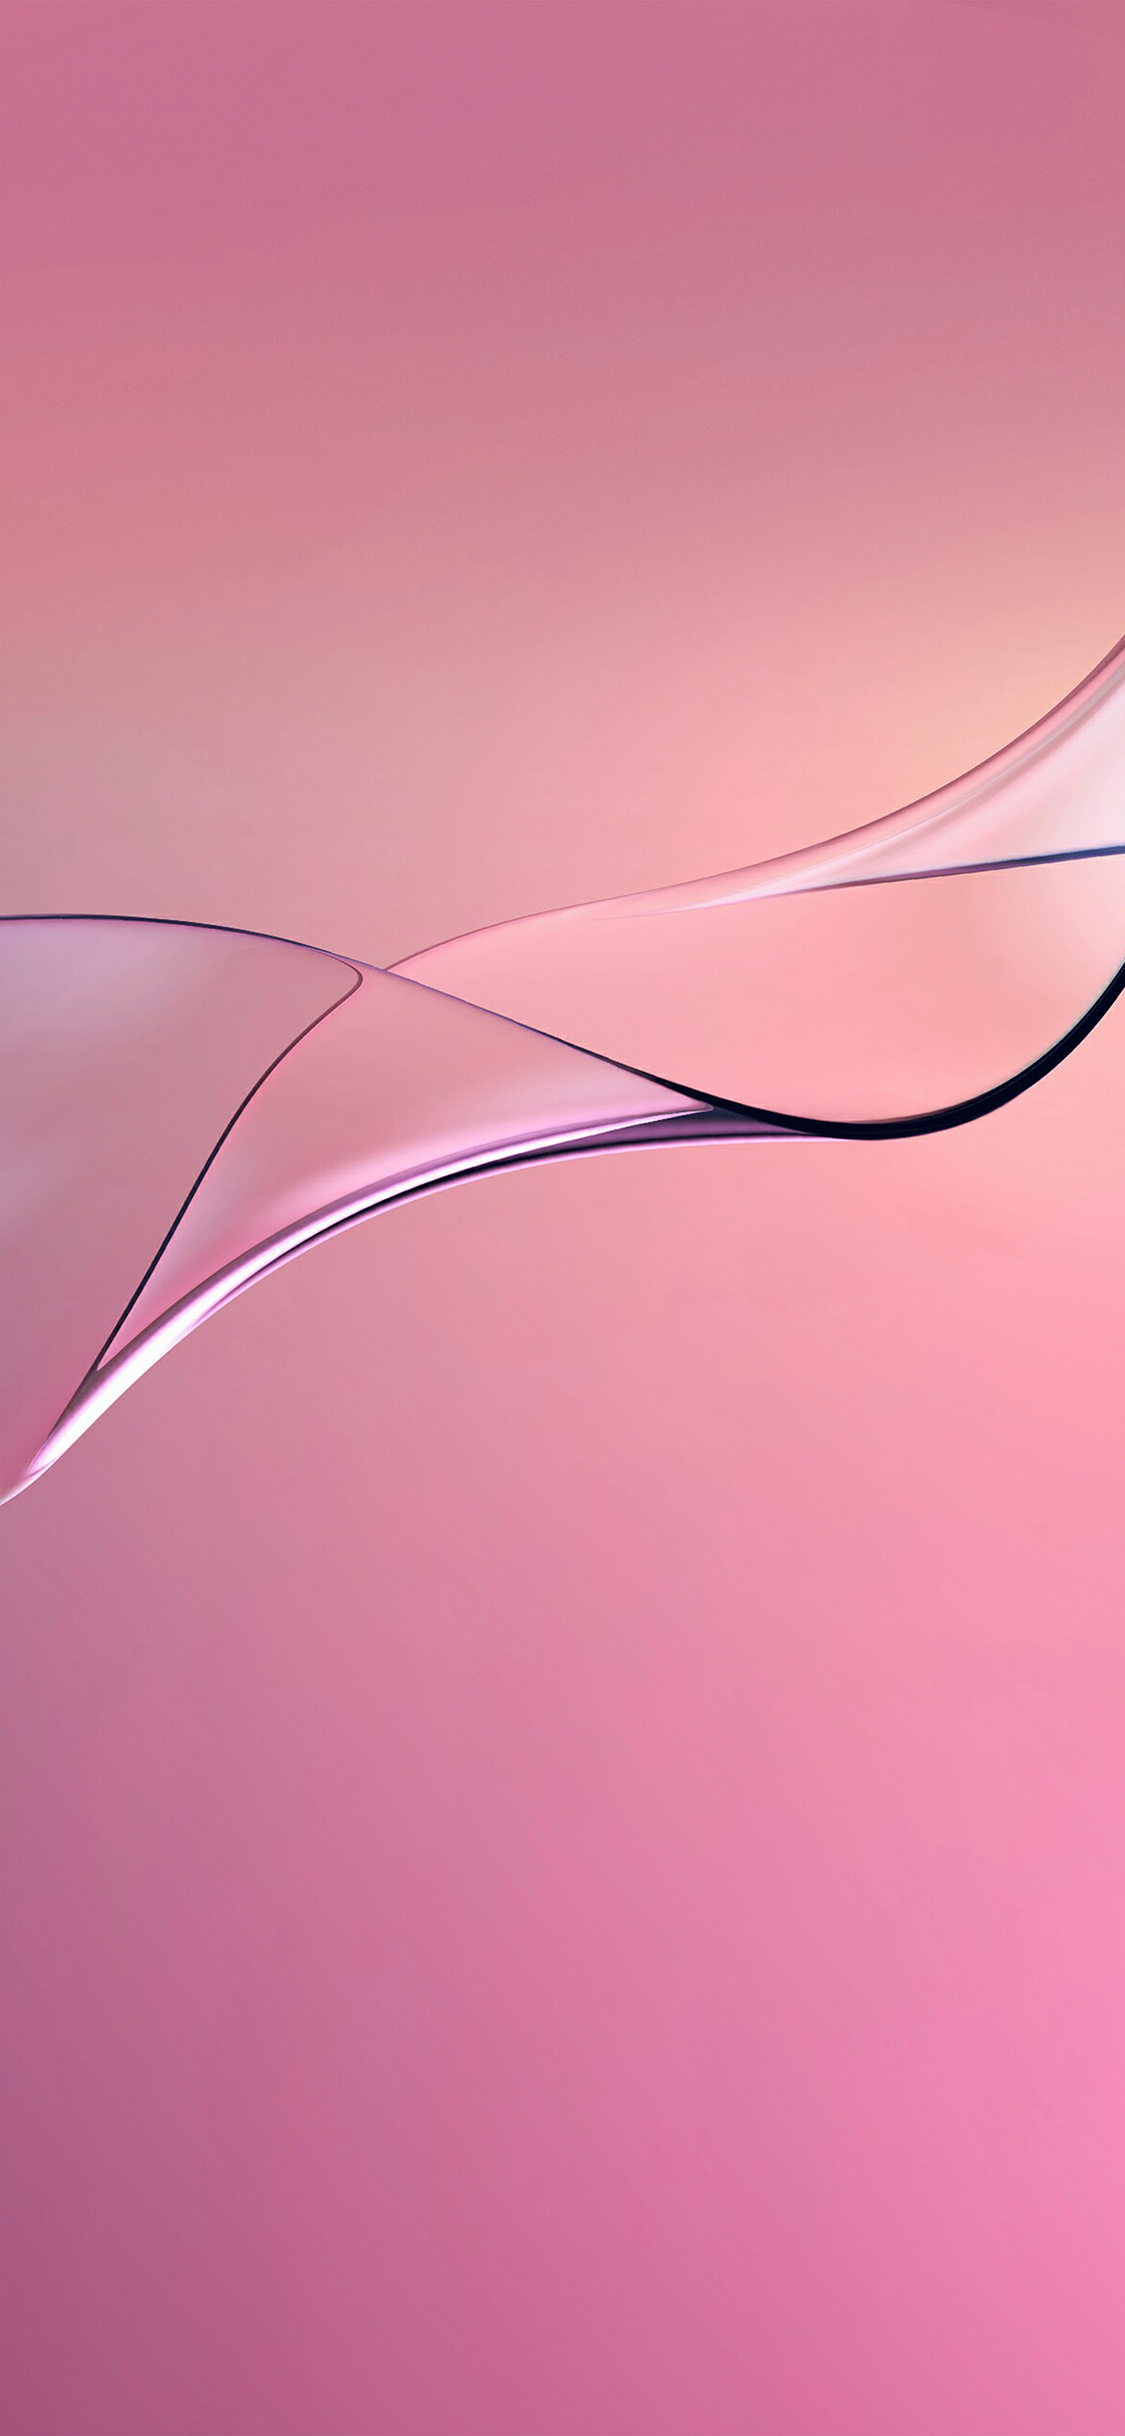 iPhoneXpapers.com-Apple-iPhone-wallpaper-vw31-curves-pink-abstract-pattern-background